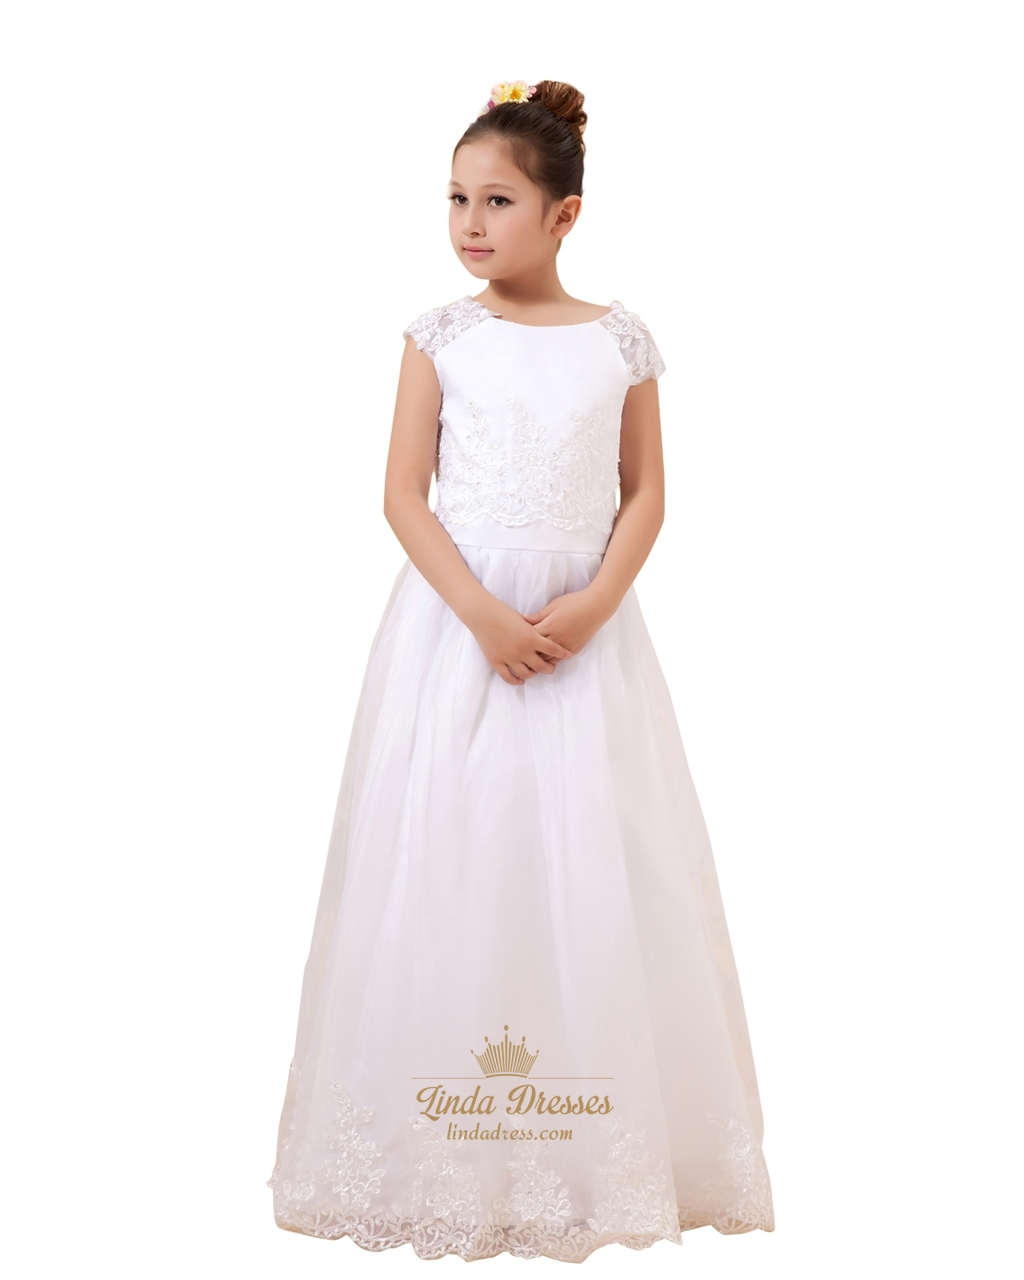 167a698a8c5 White Cap Sleeve Floor-Length Tulle Flower Girl Dress With Lace Bodice SKU  -W092